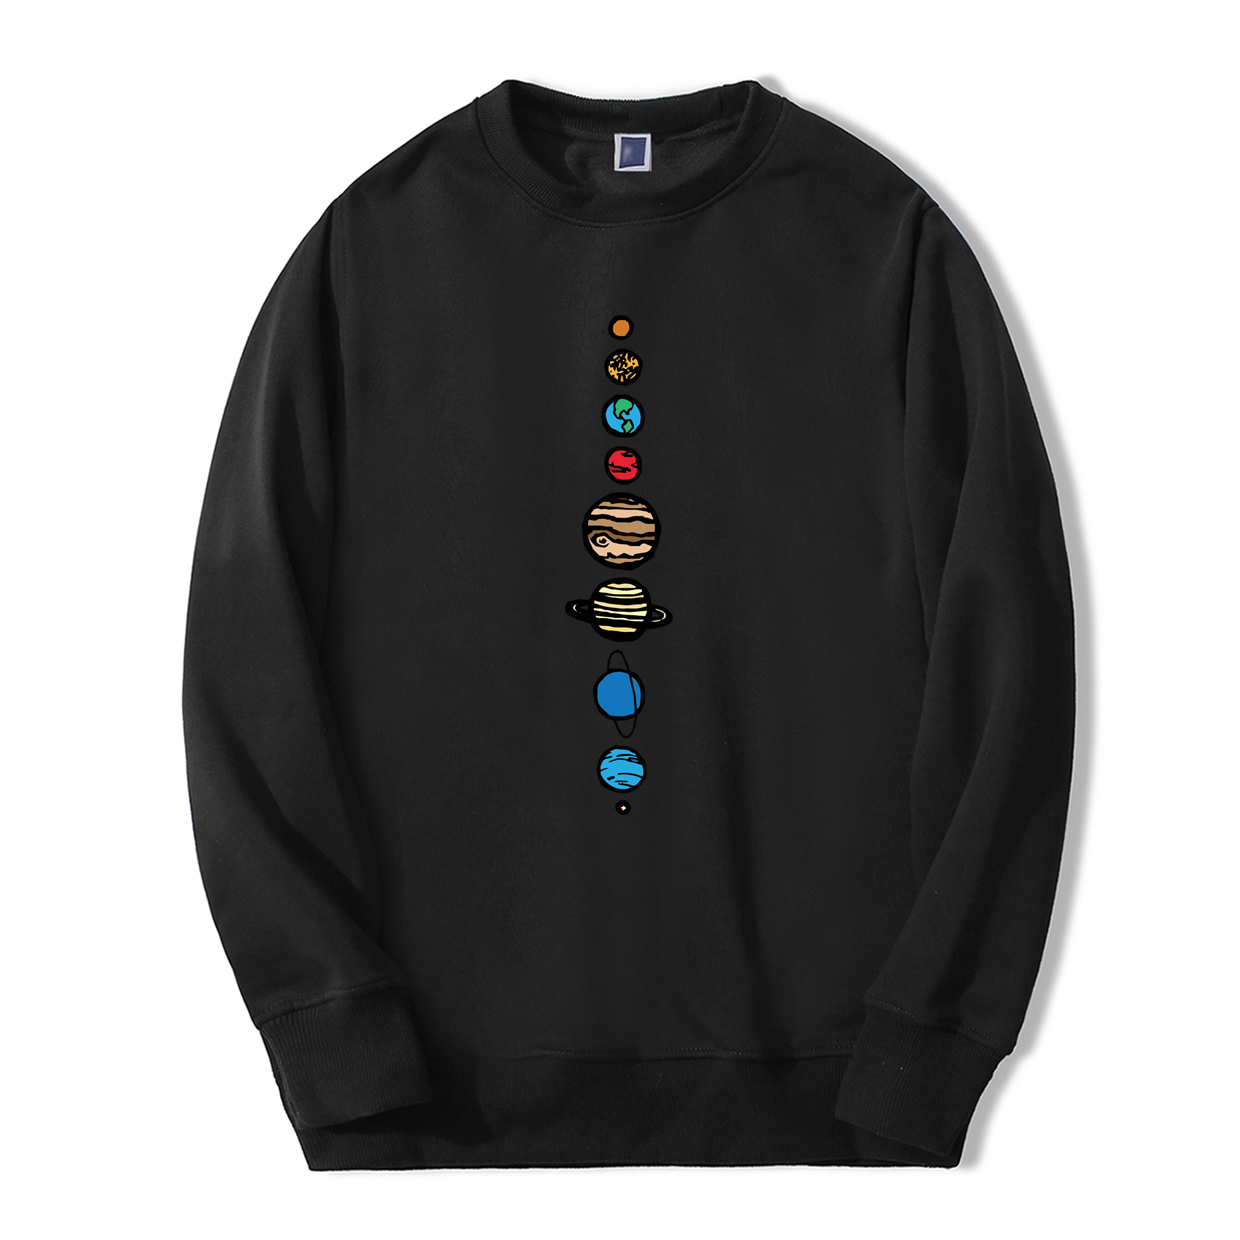 Planets Colour Men Hoodie 2019 Autumn Winter Warm Fleece High Quality Sweatshirts Creative Design Funny Fashion Fitness Hoodies